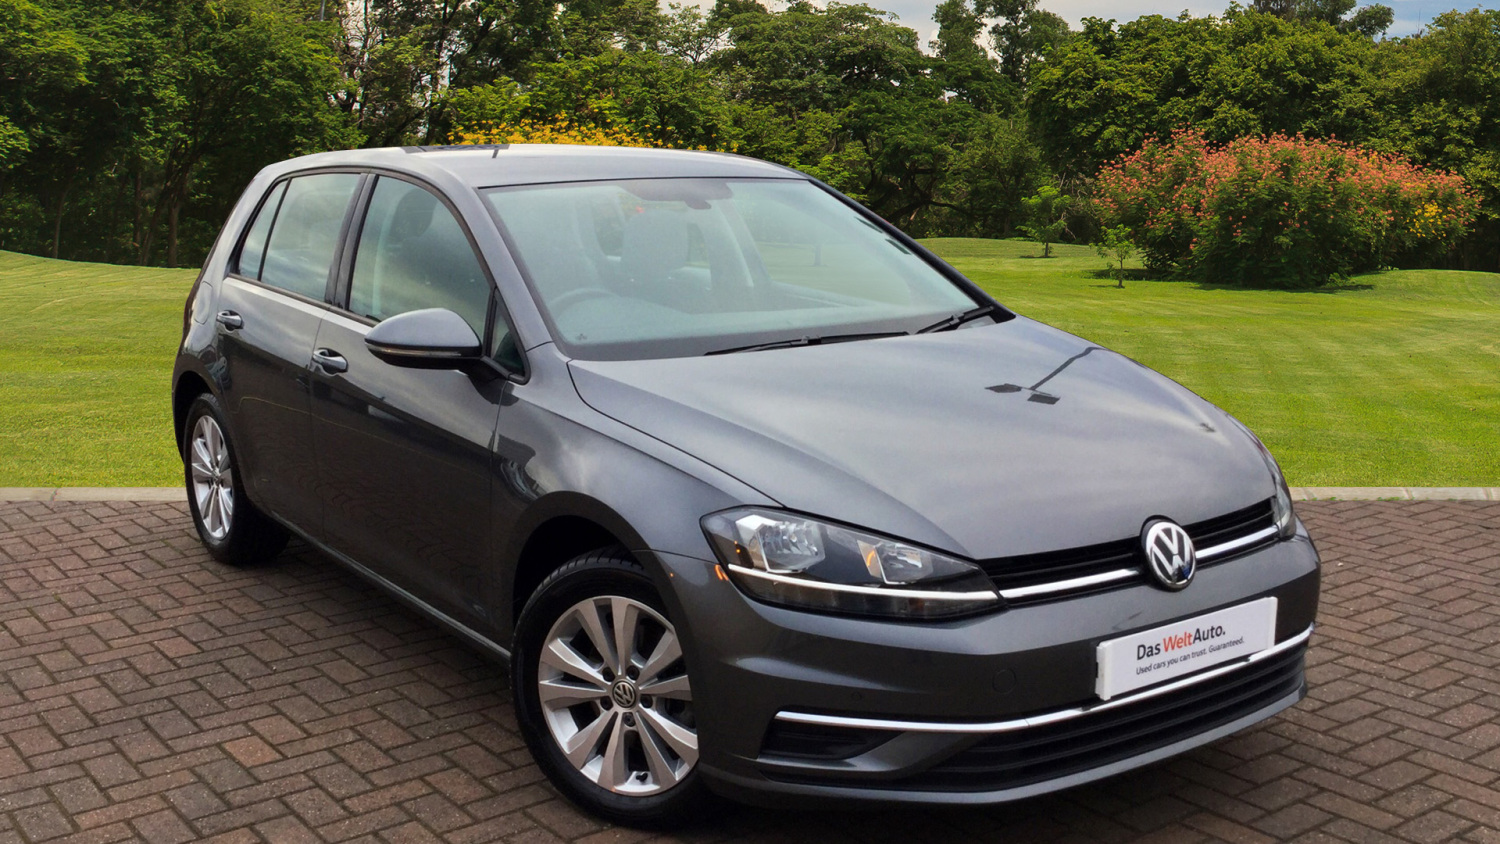 used volkswagen golf 1 4 tsi se nav 5dr petrol hatchback. Black Bedroom Furniture Sets. Home Design Ideas